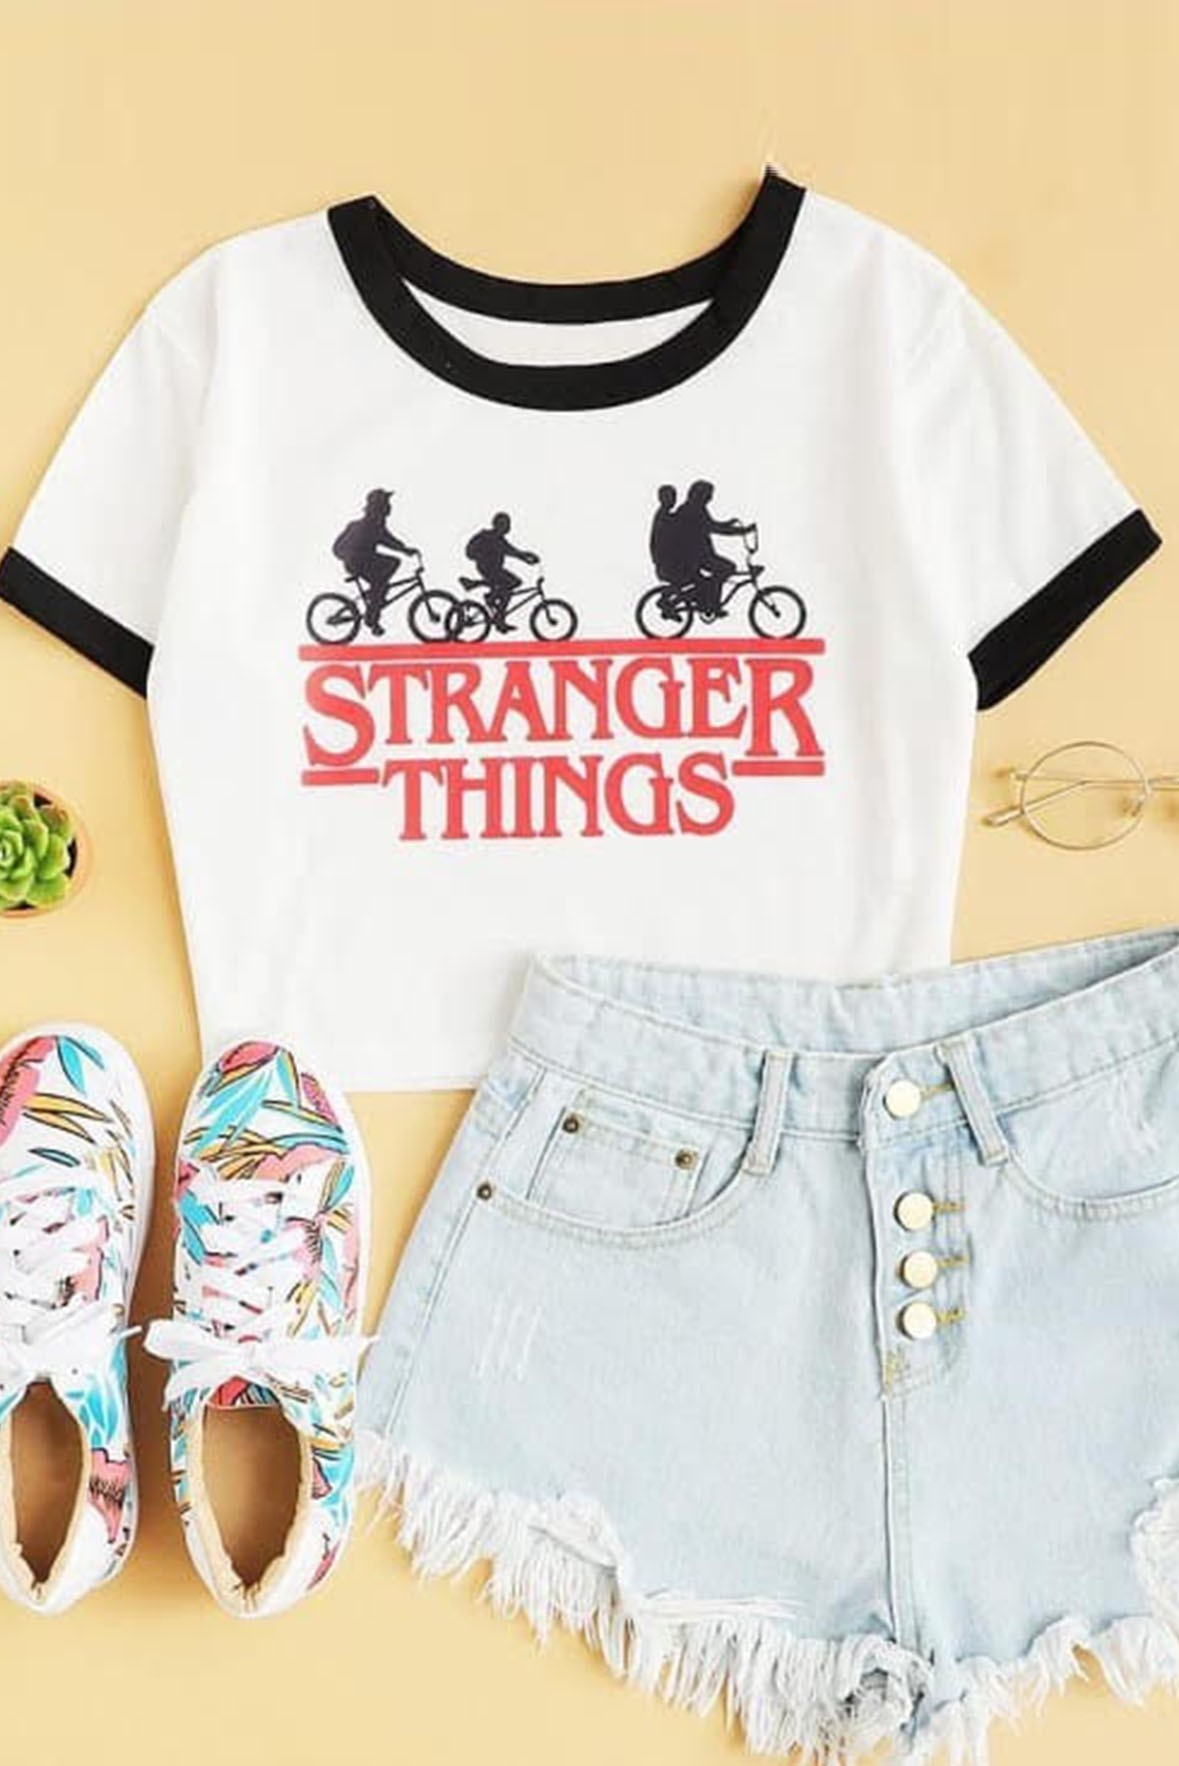 Strong things tee